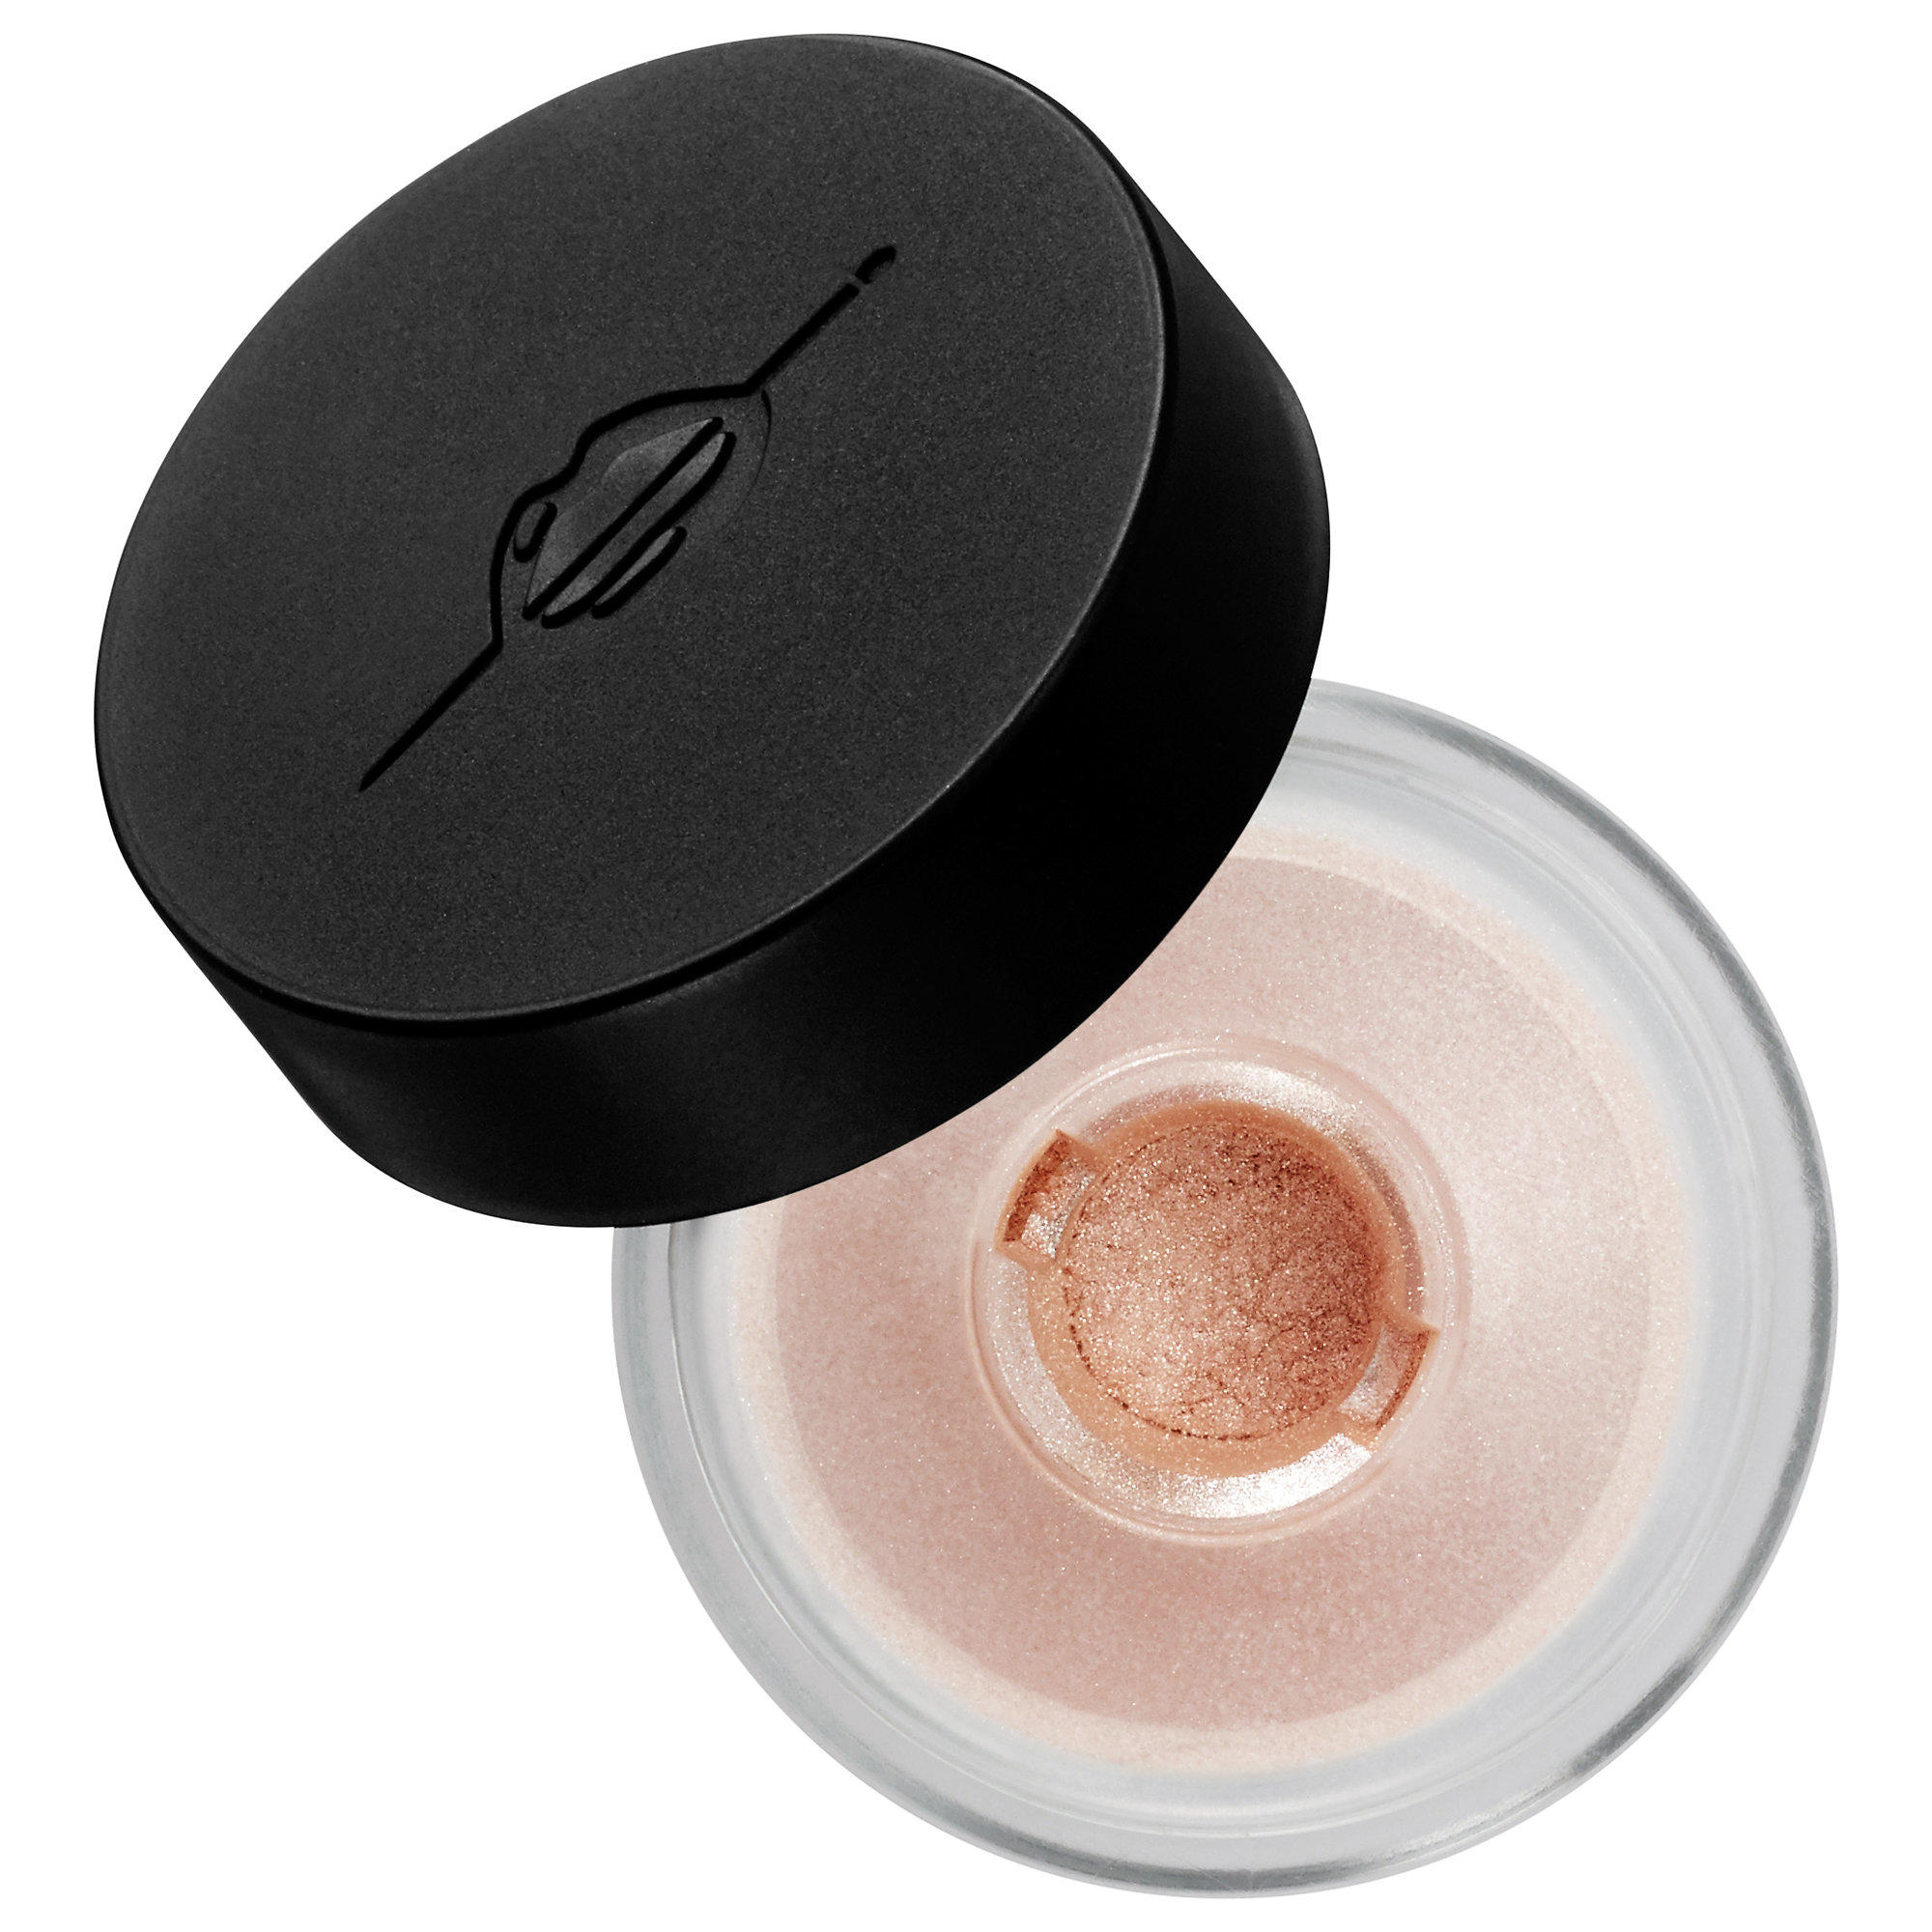 Makeup Forever Star Lit Powder Ivory 13